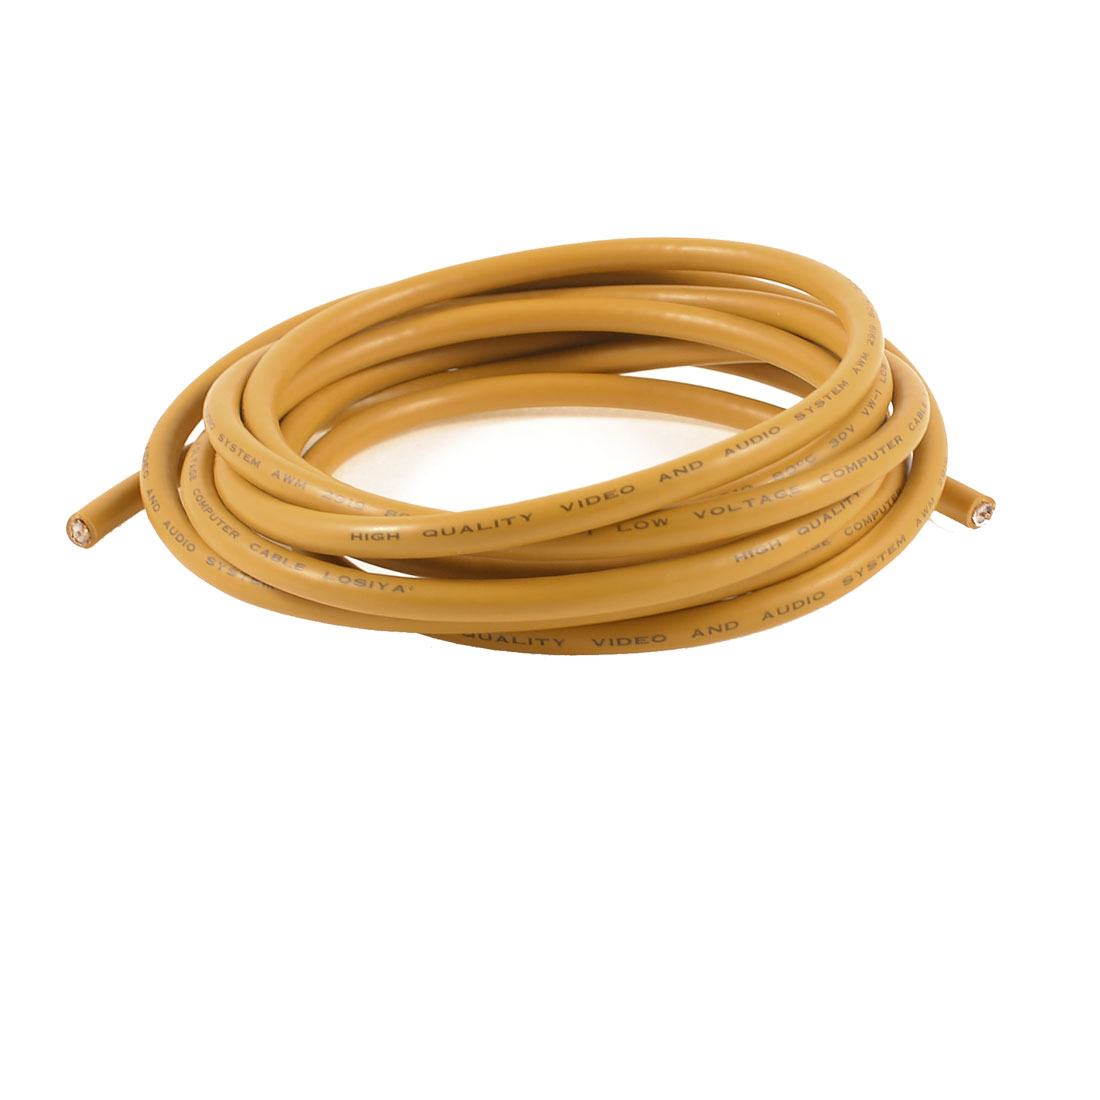 Audio 3 Meter Yellow Single Wire Extended Audio Cable